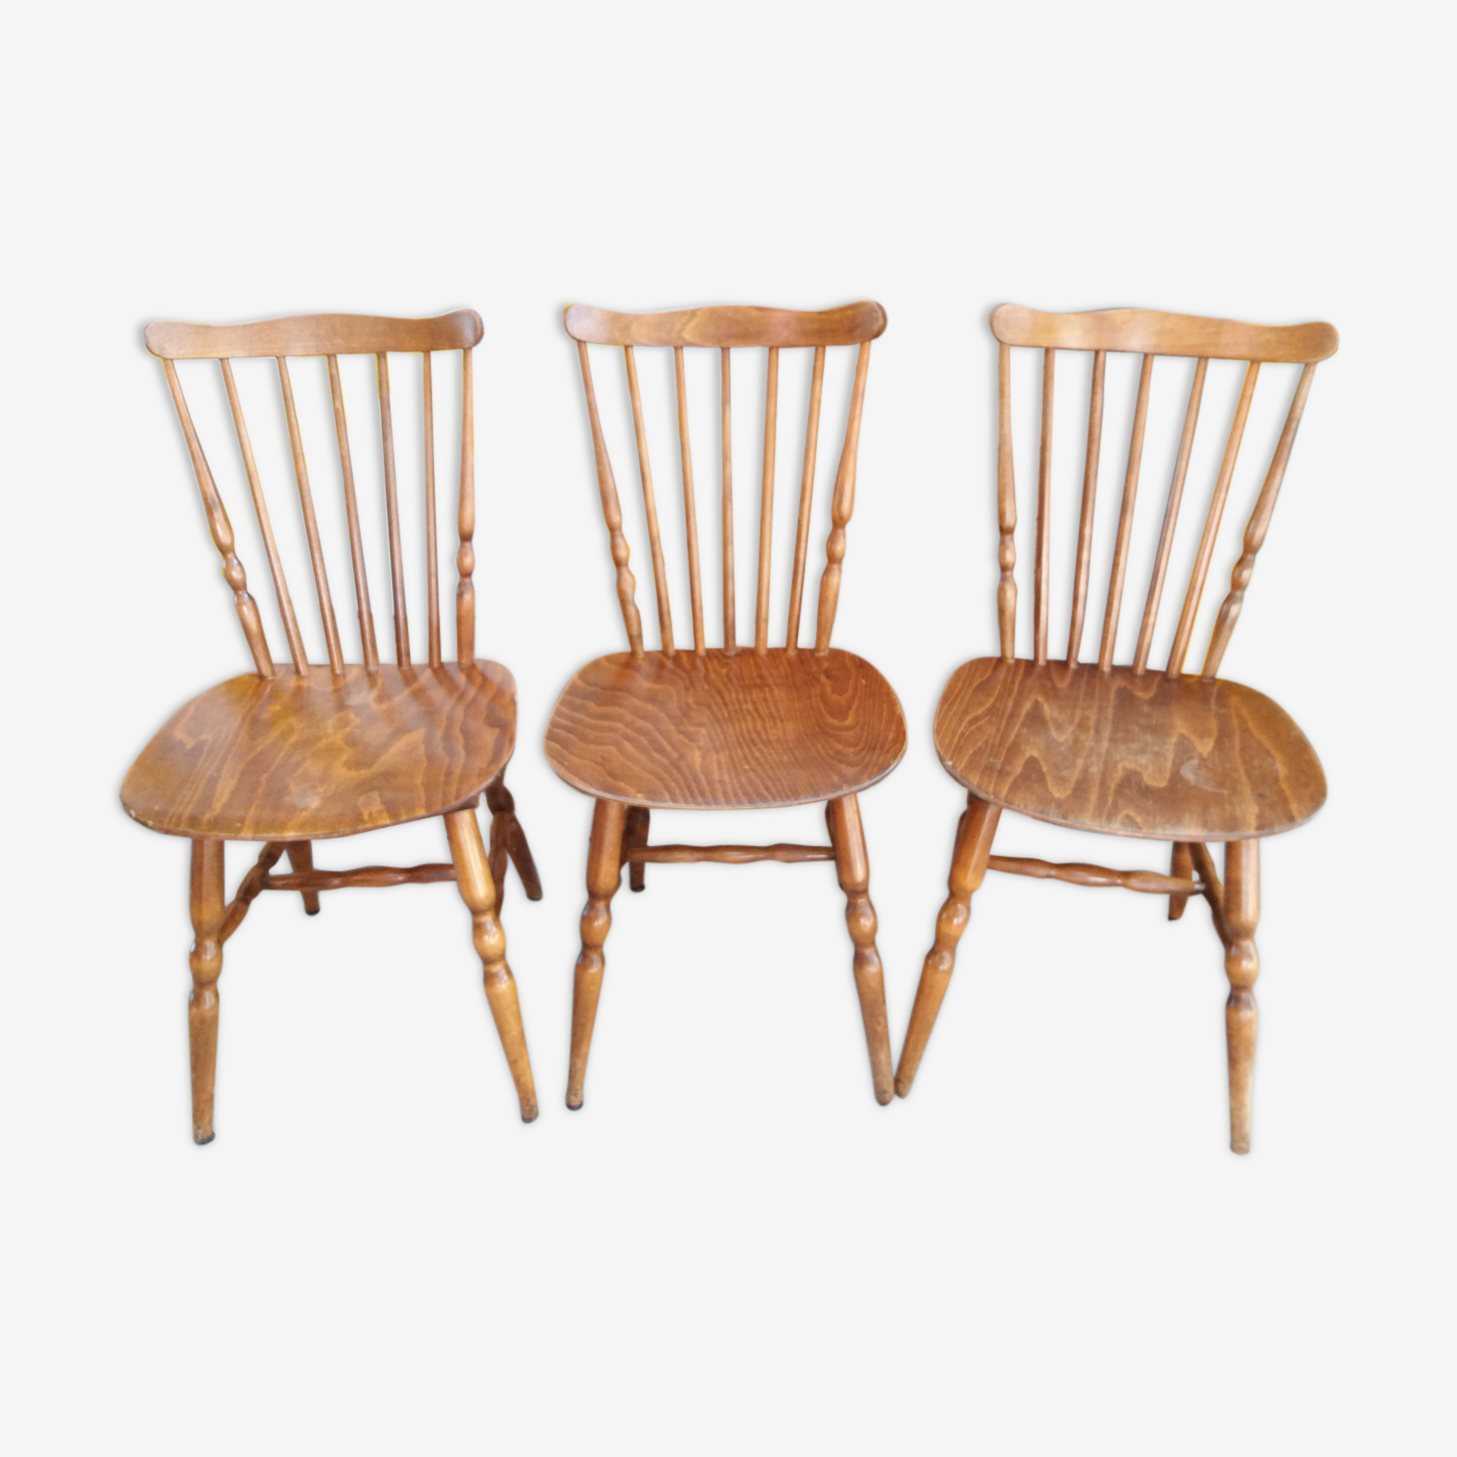 Trio Bistro chairs